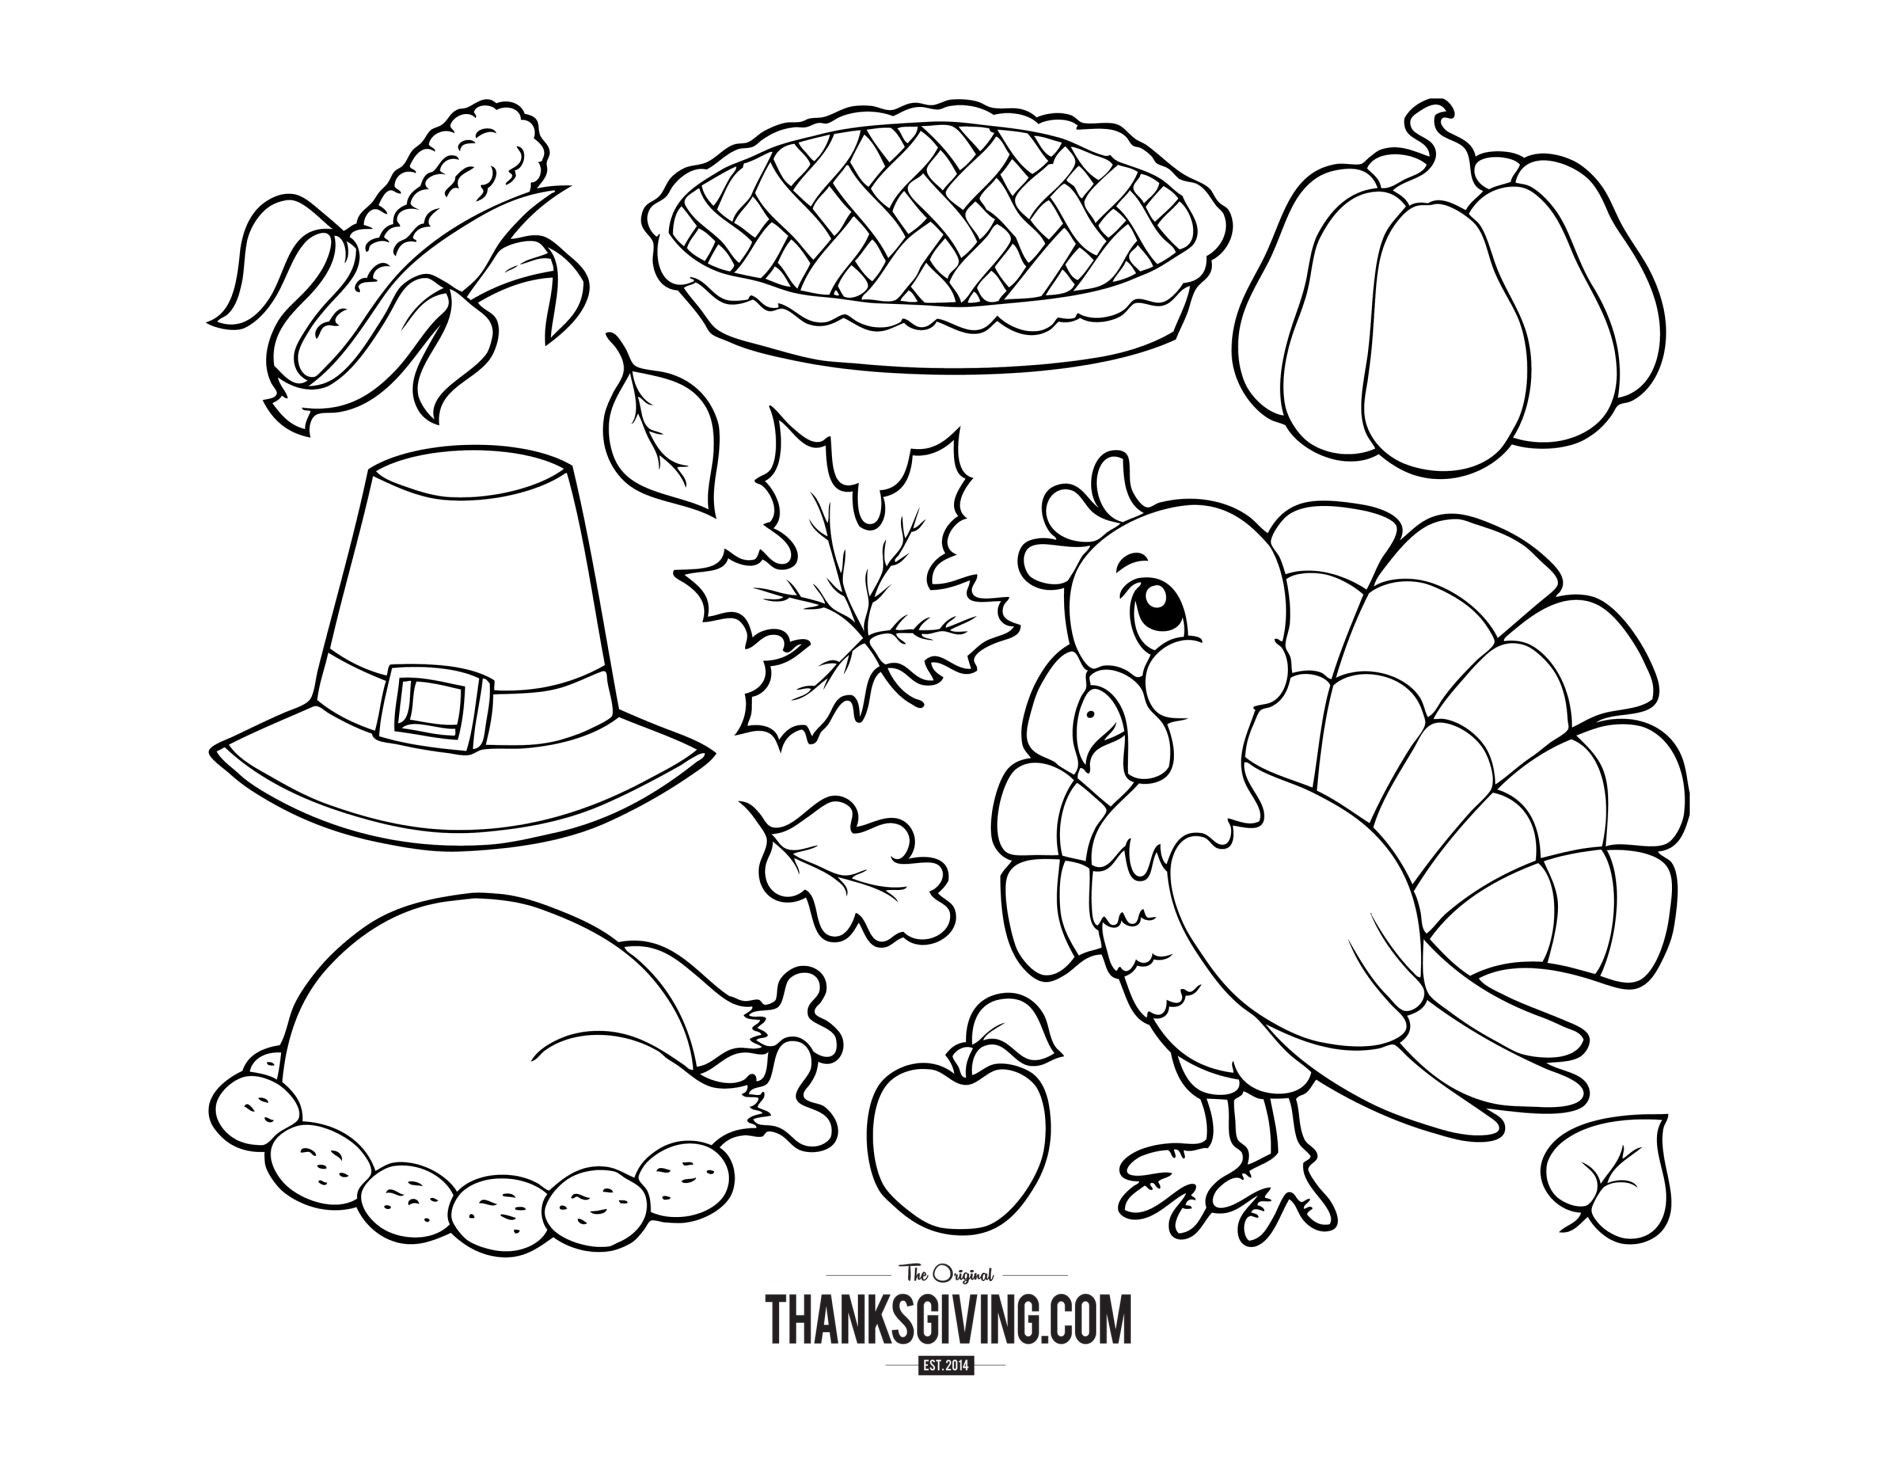 turkey dinner coloring page free turkey dinner pictures download free clip art free page turkey dinner coloring